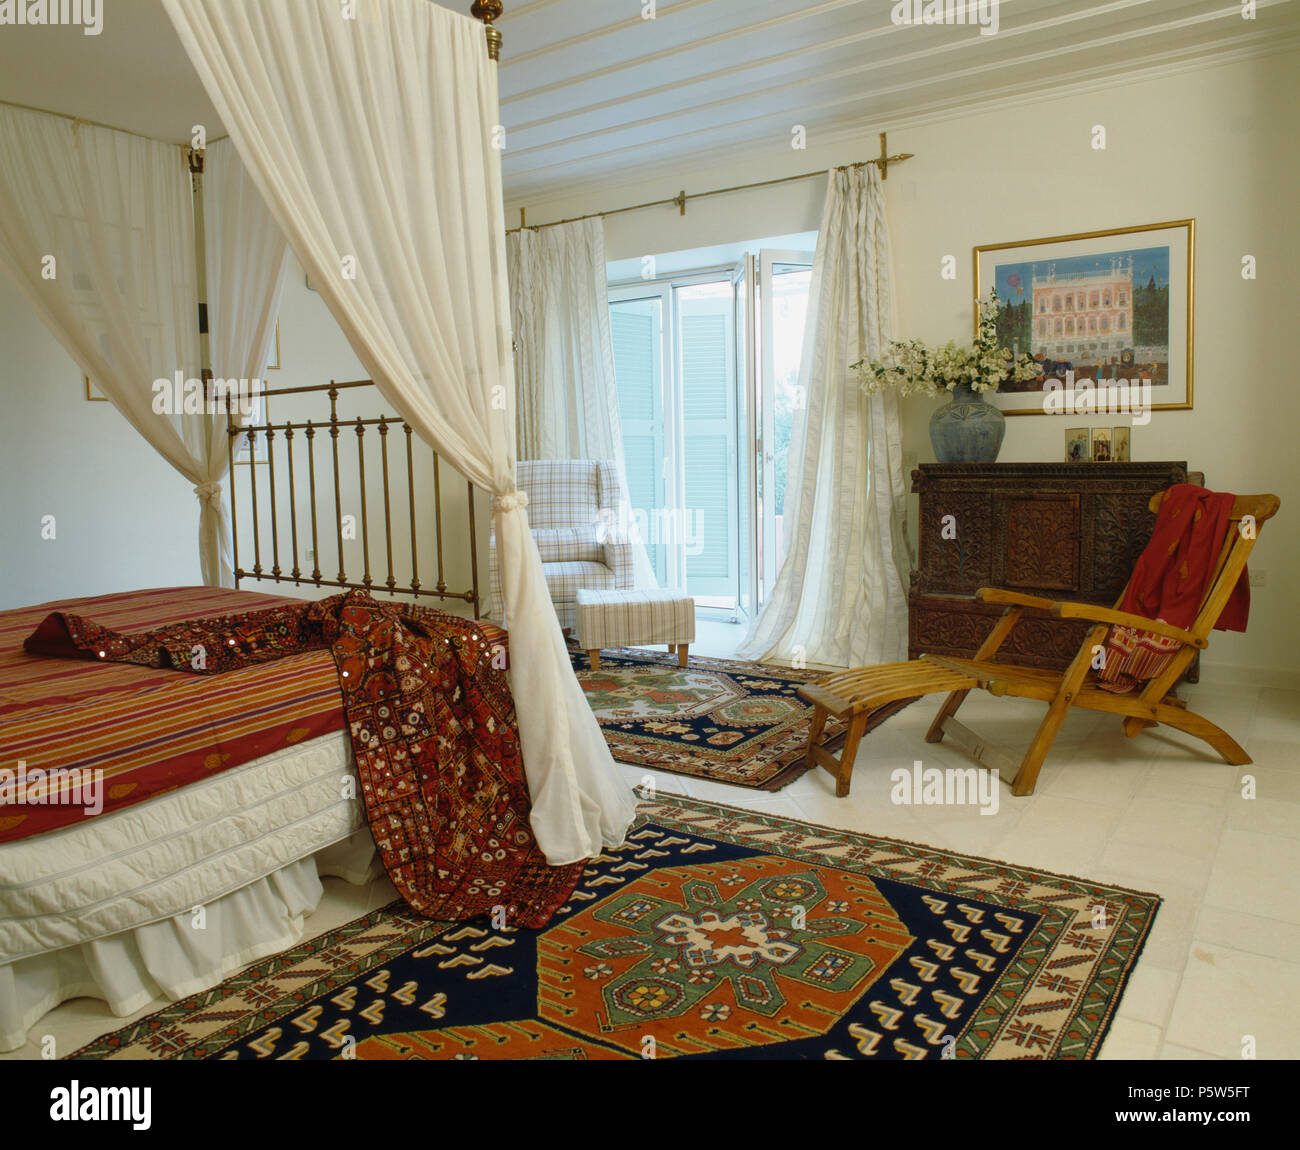 Furniture Beds Soft Furnishings Rugs Stockfotos & Furniture Beds ...